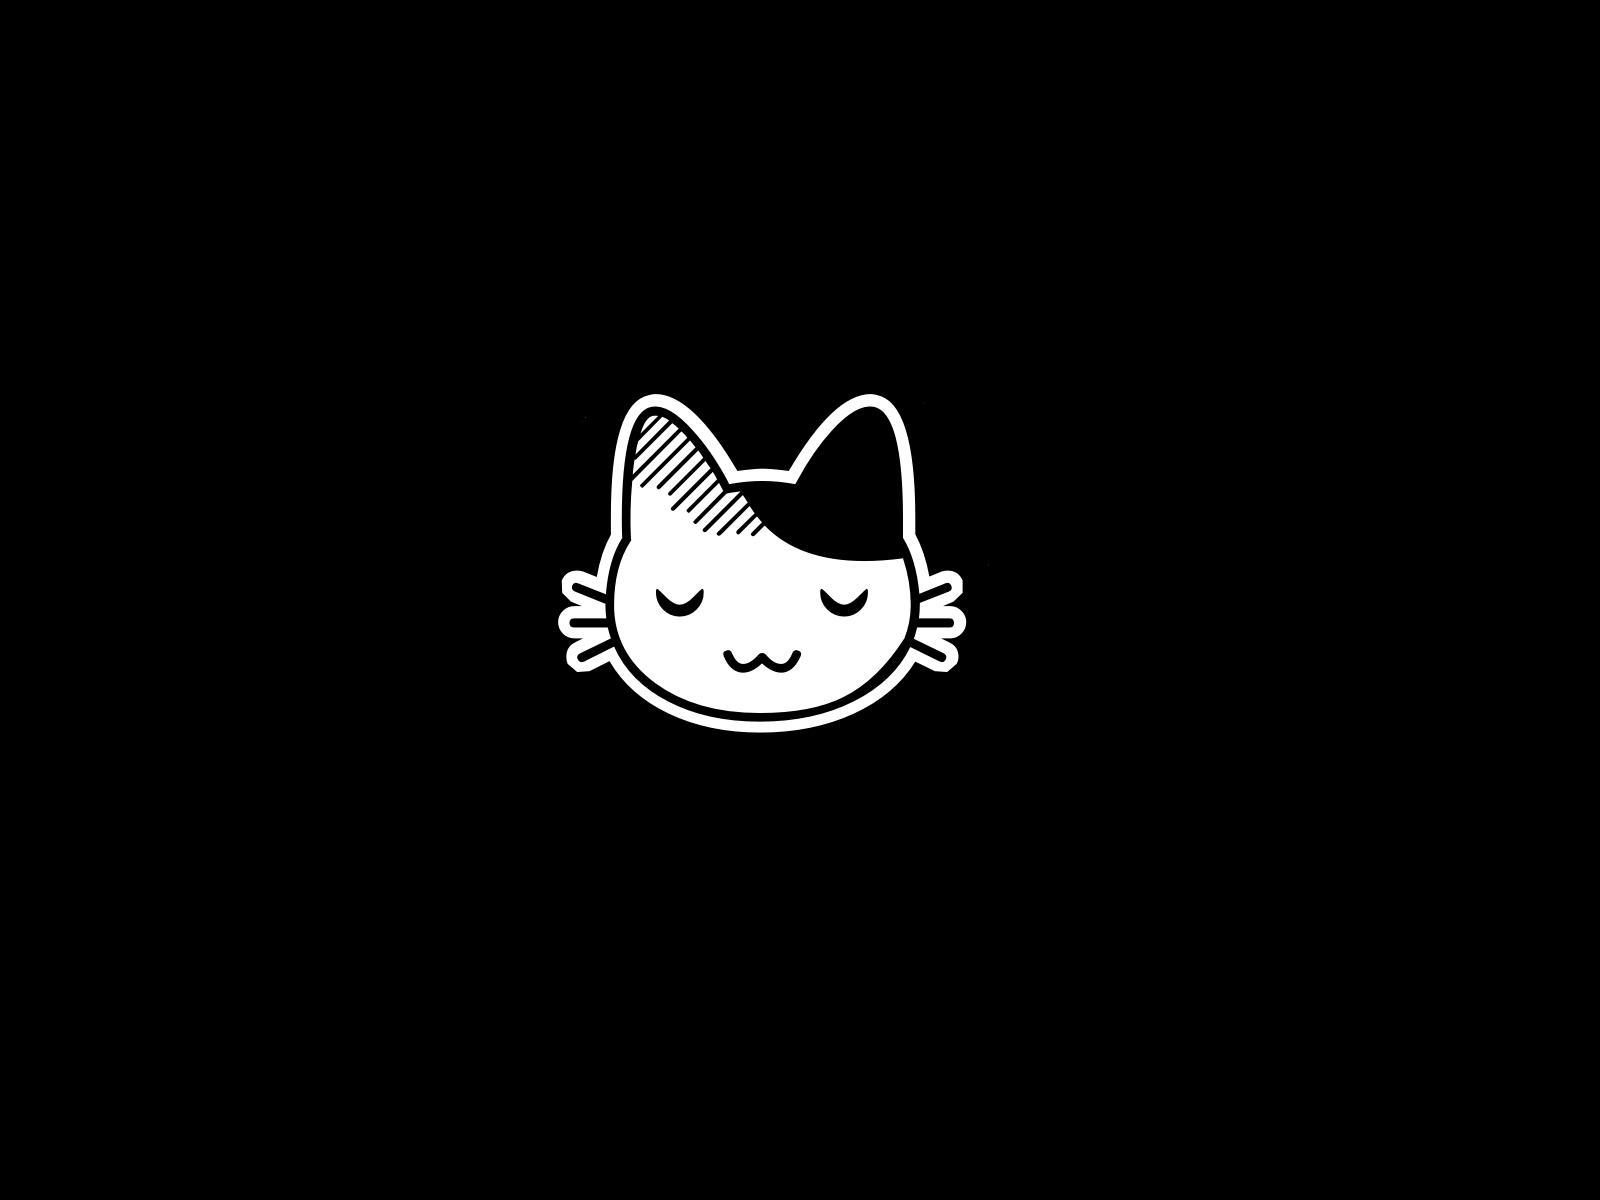 Kawaii Cat Wallpapers Wallpaper Cave